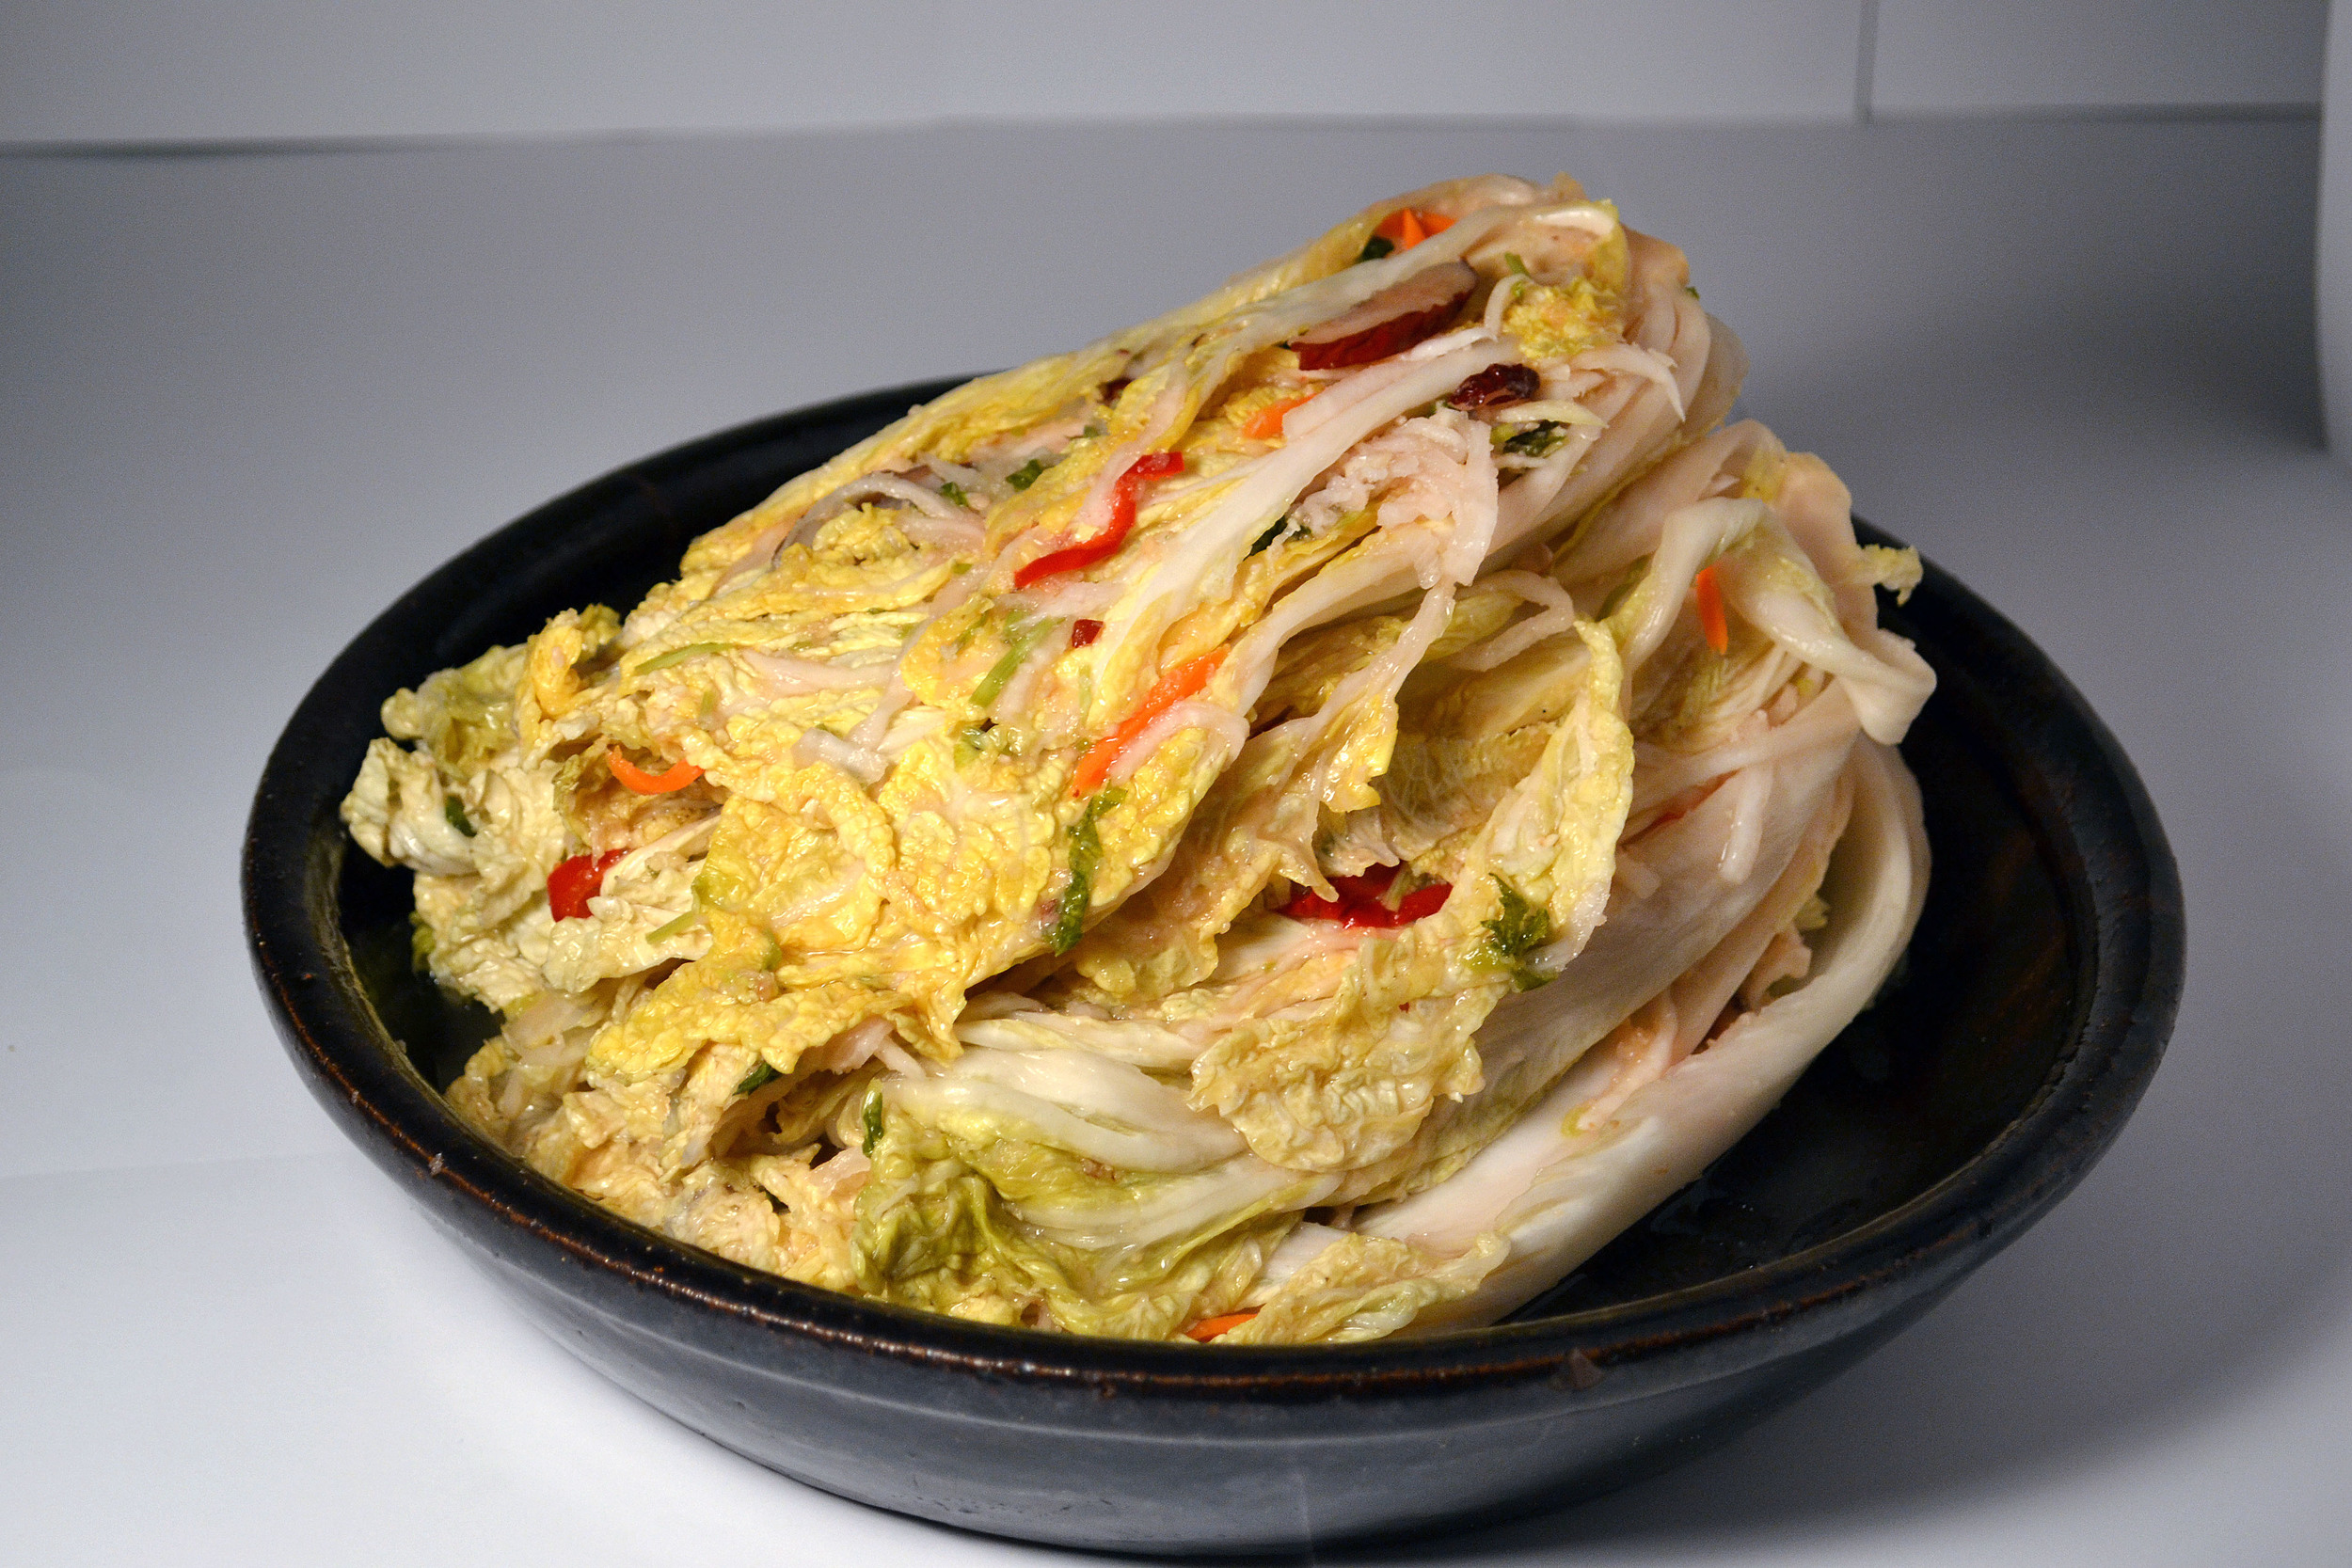 WHITE KIMCHI:This is a non-spicy Napa cabbage Kimchi. Not only does it contain the most ingredients, it is one the healthiest. For those who want a calming touch to their taste buds, this is for you.